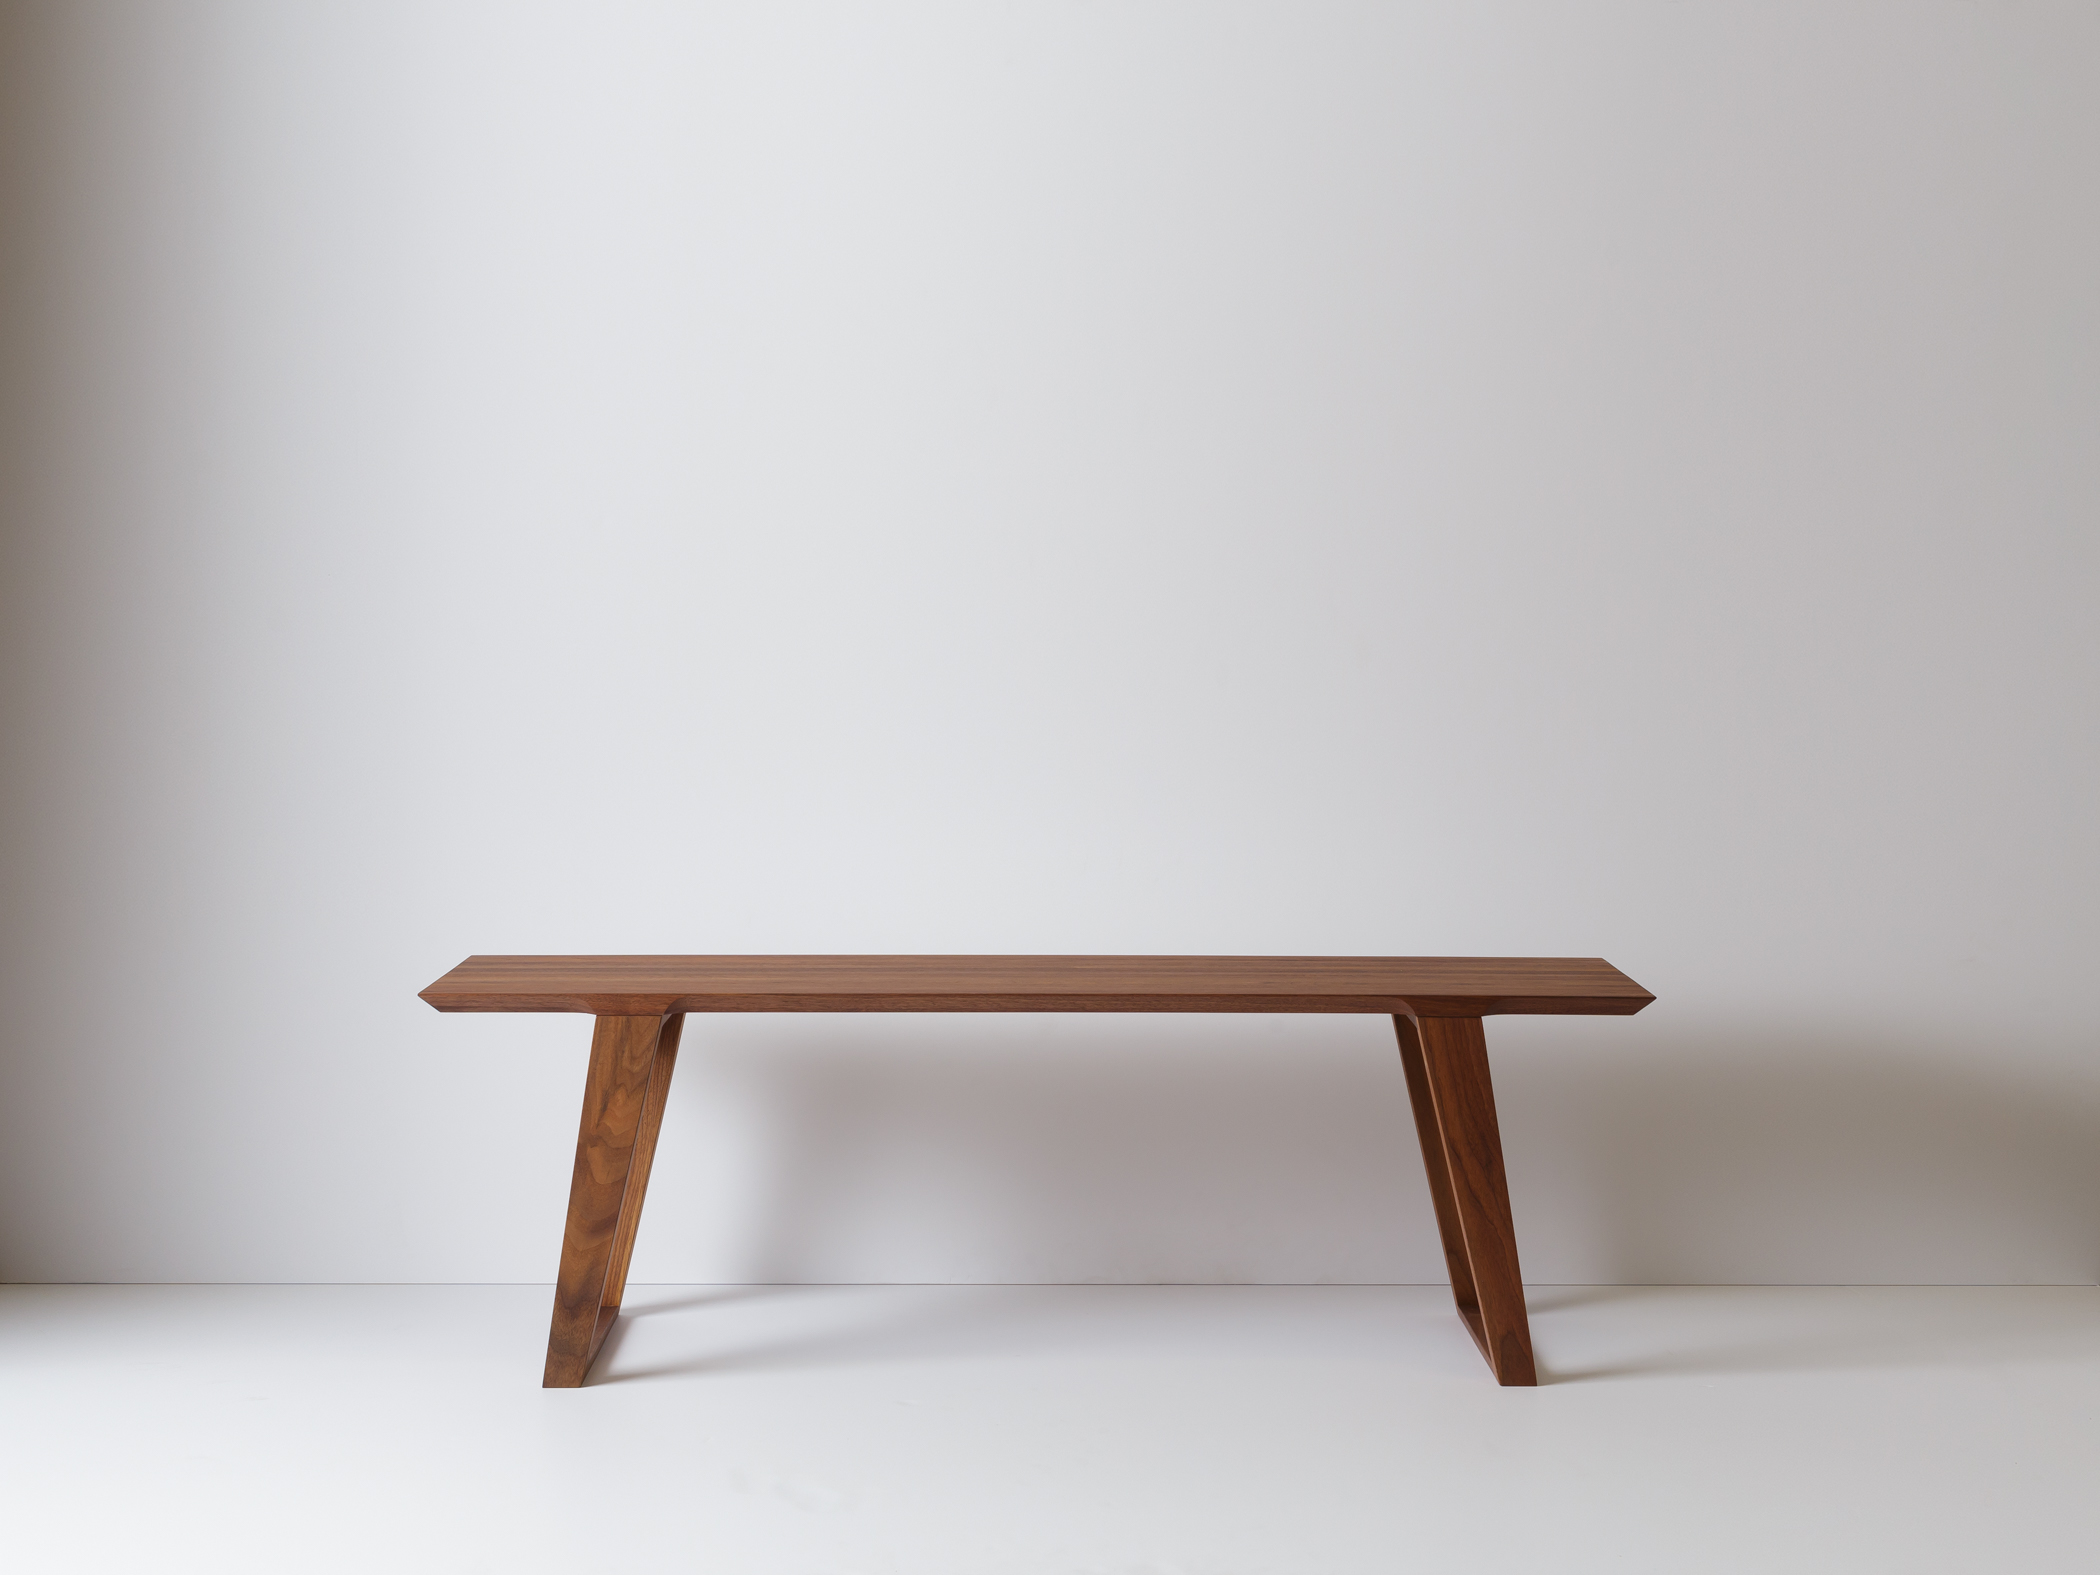 Modern Contemporary Isometric Bench Coffee Table in solid walnut